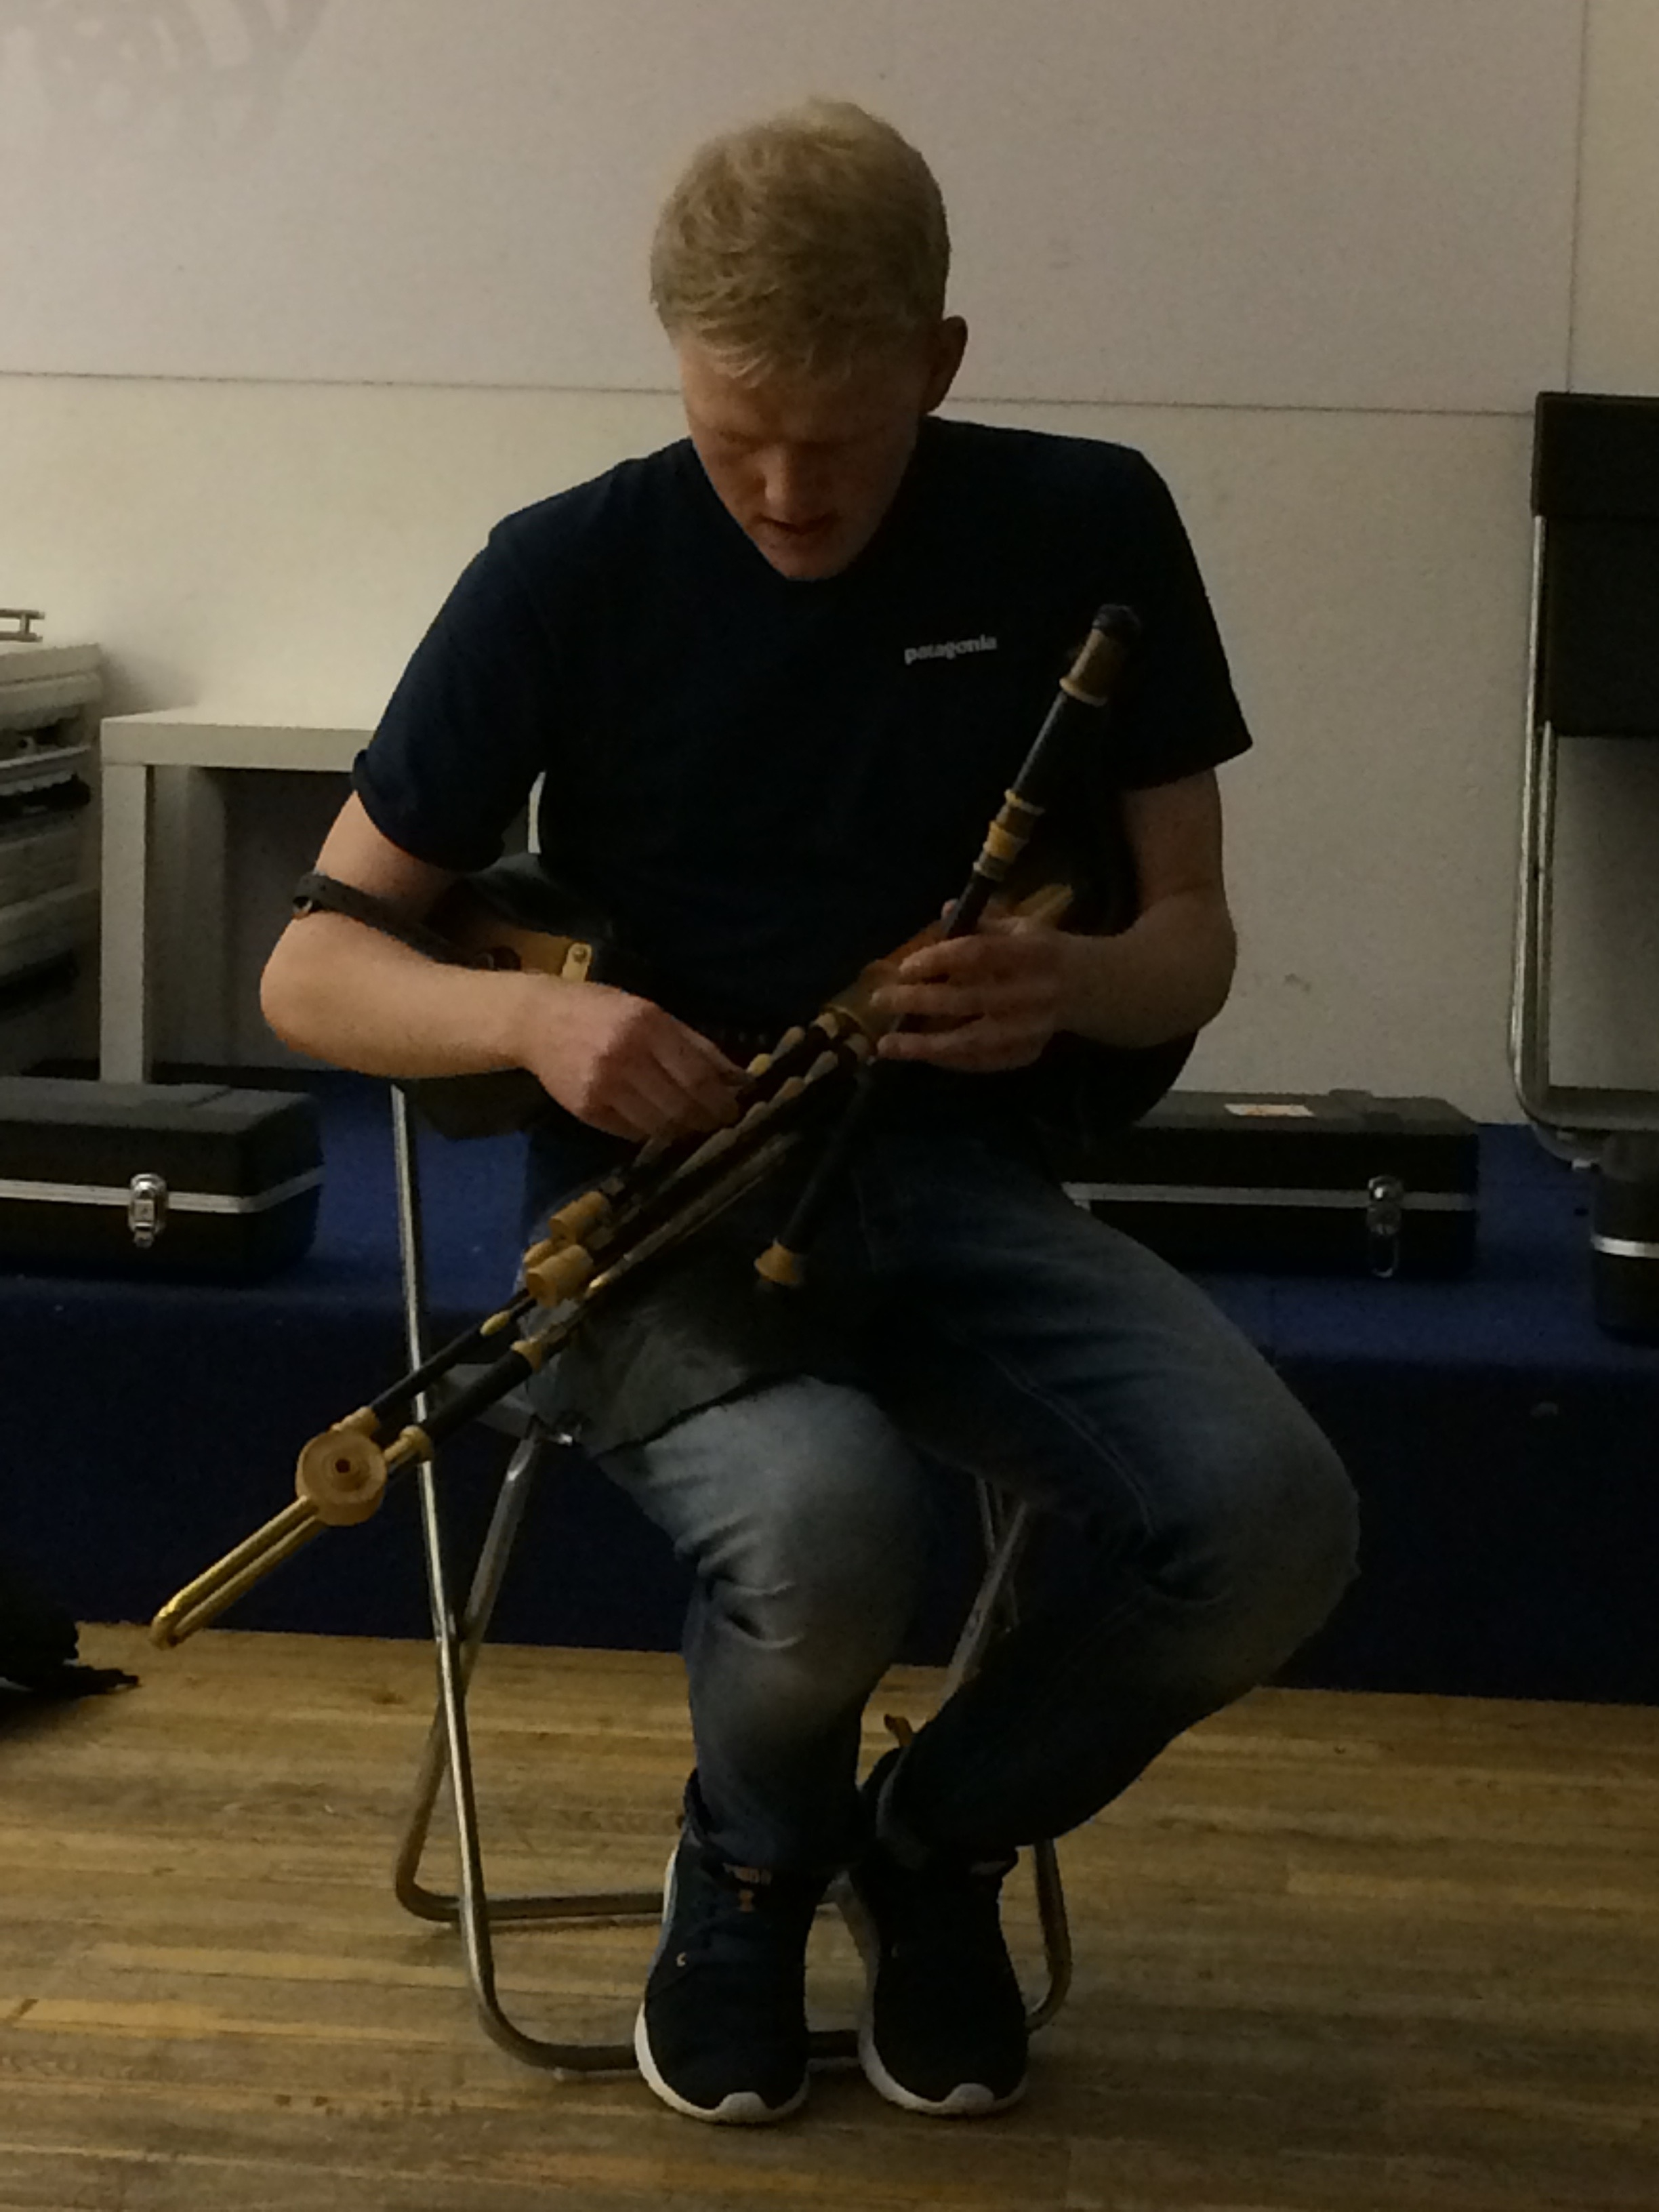 Copy of 25th Annual Piping Tionól